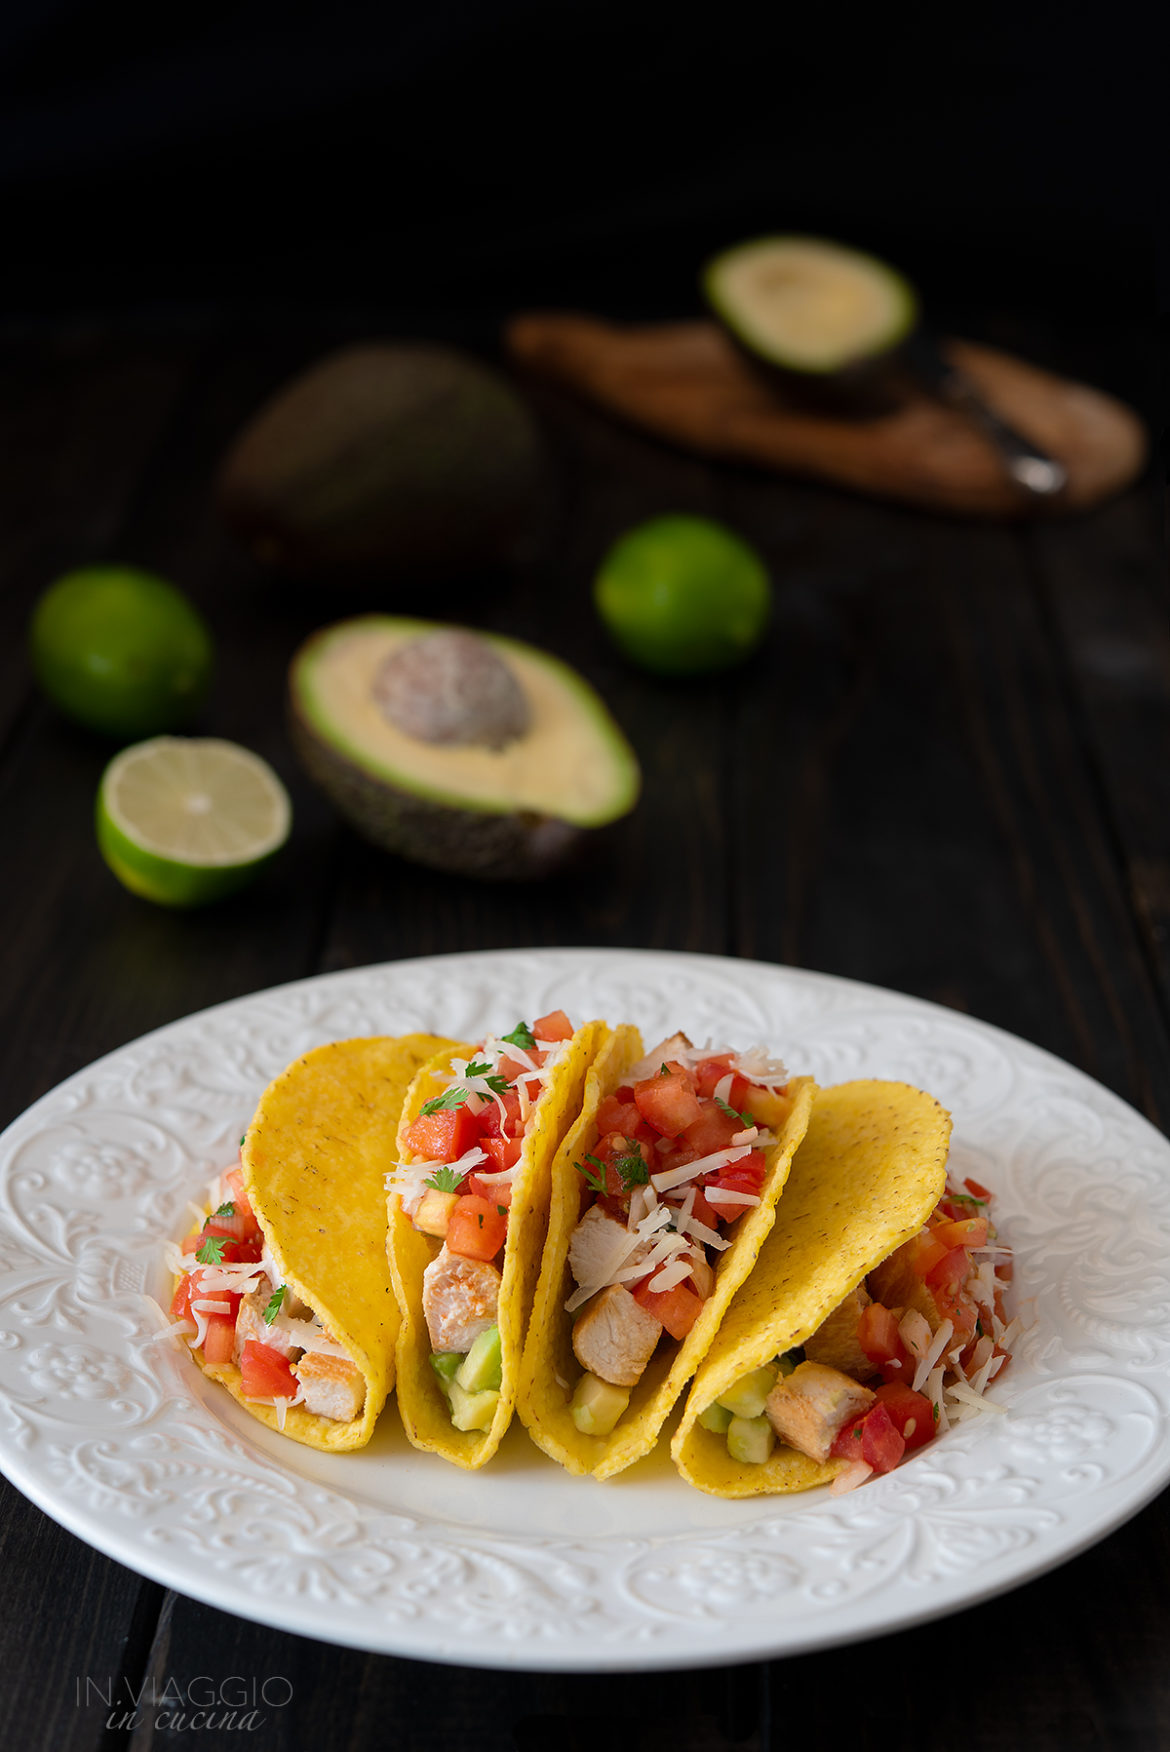 tacos with chicken, avocado and pico de gallo